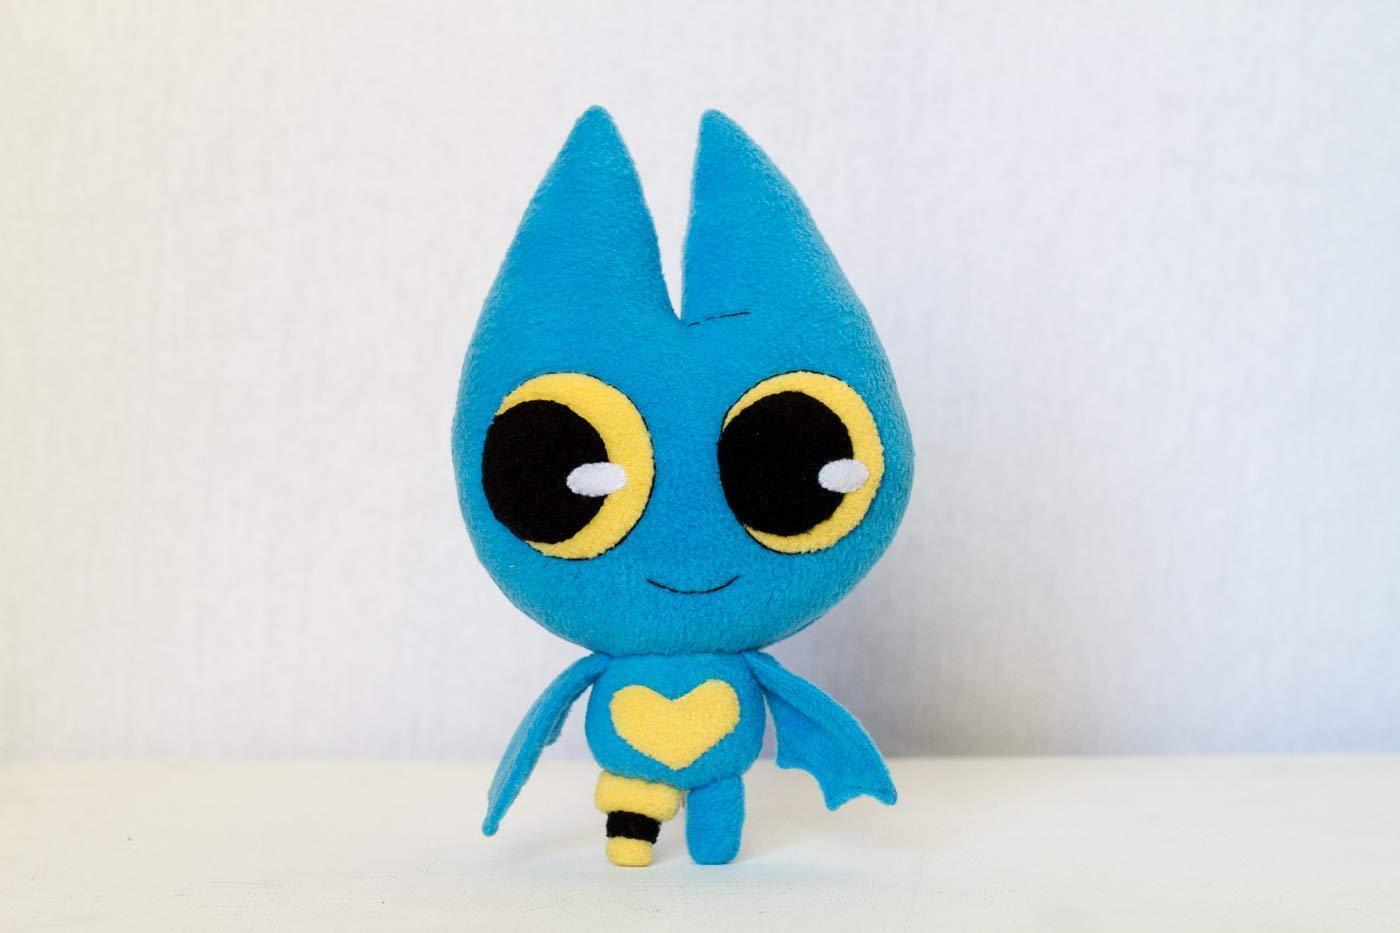 Amazon Com Adorabat Plush Mao Mao Heroes Of Pure Heart Toys Inspired Handmade Adorabat Toy 9 8 In High Handmade Gamasexual » online games » drawing » mao mao: adorabat plush mao mao heroes of pure heart toys inspired handmade adorabat toy 9 8 in high